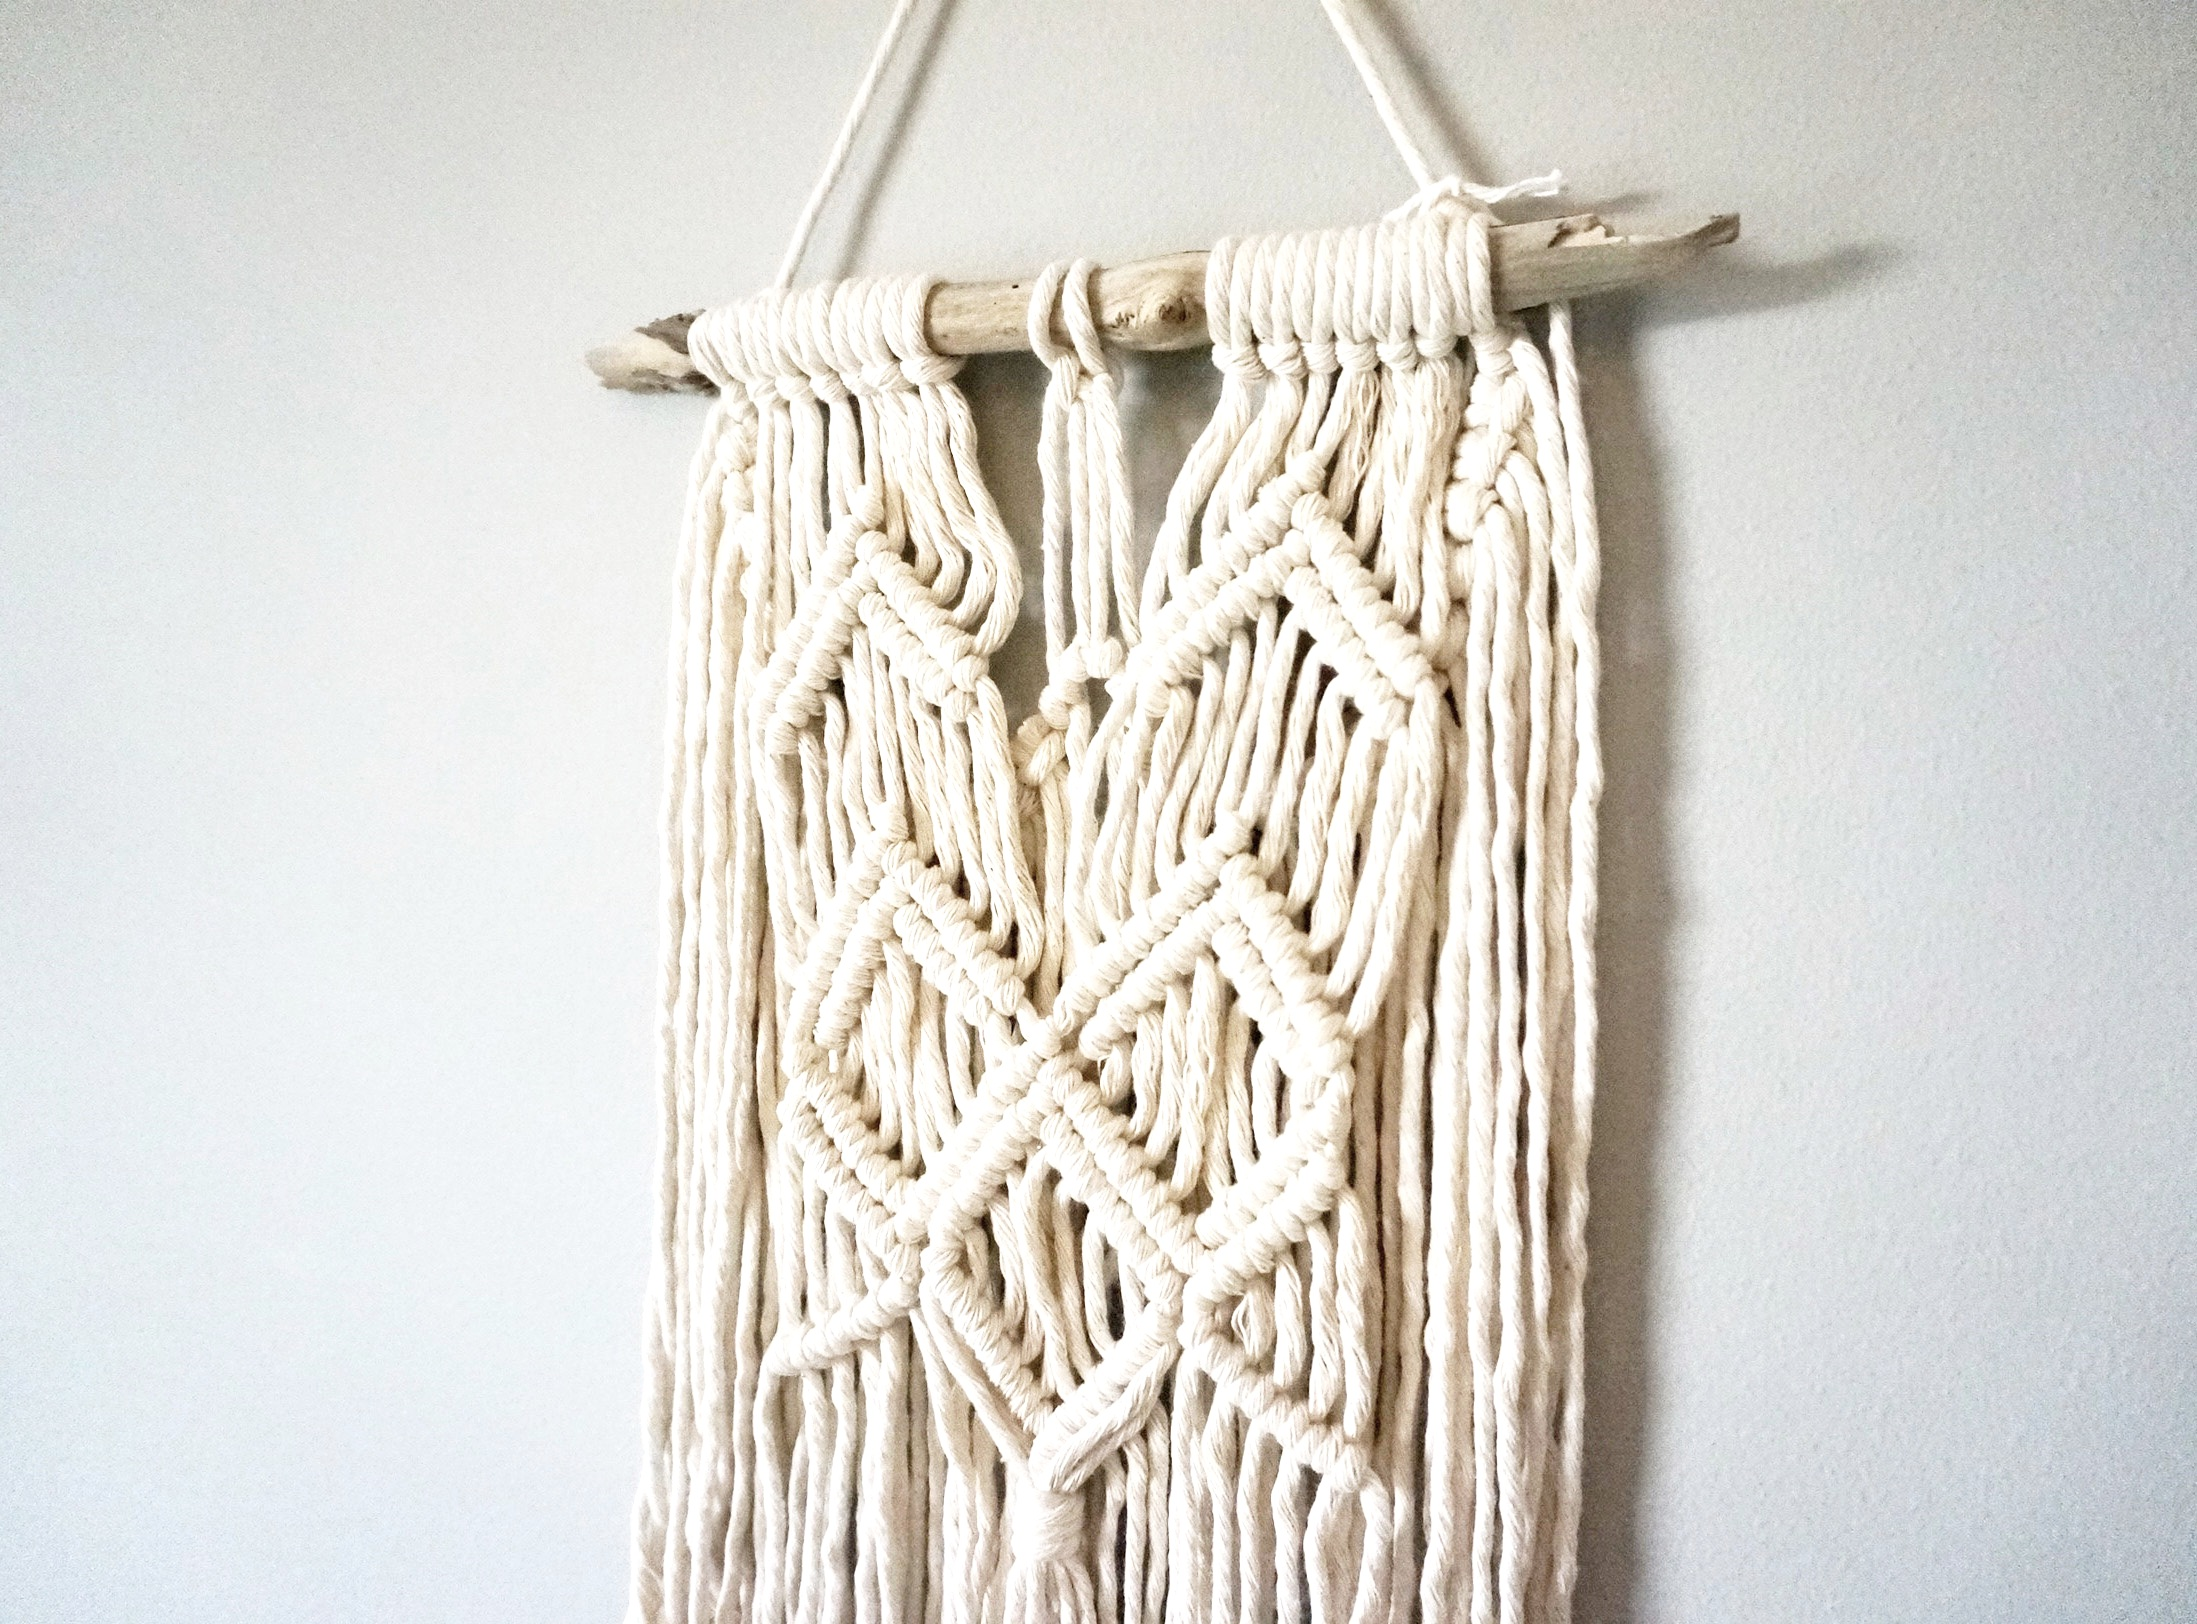 $45  |  Small Macrame Wall Hanging  |  Ivory